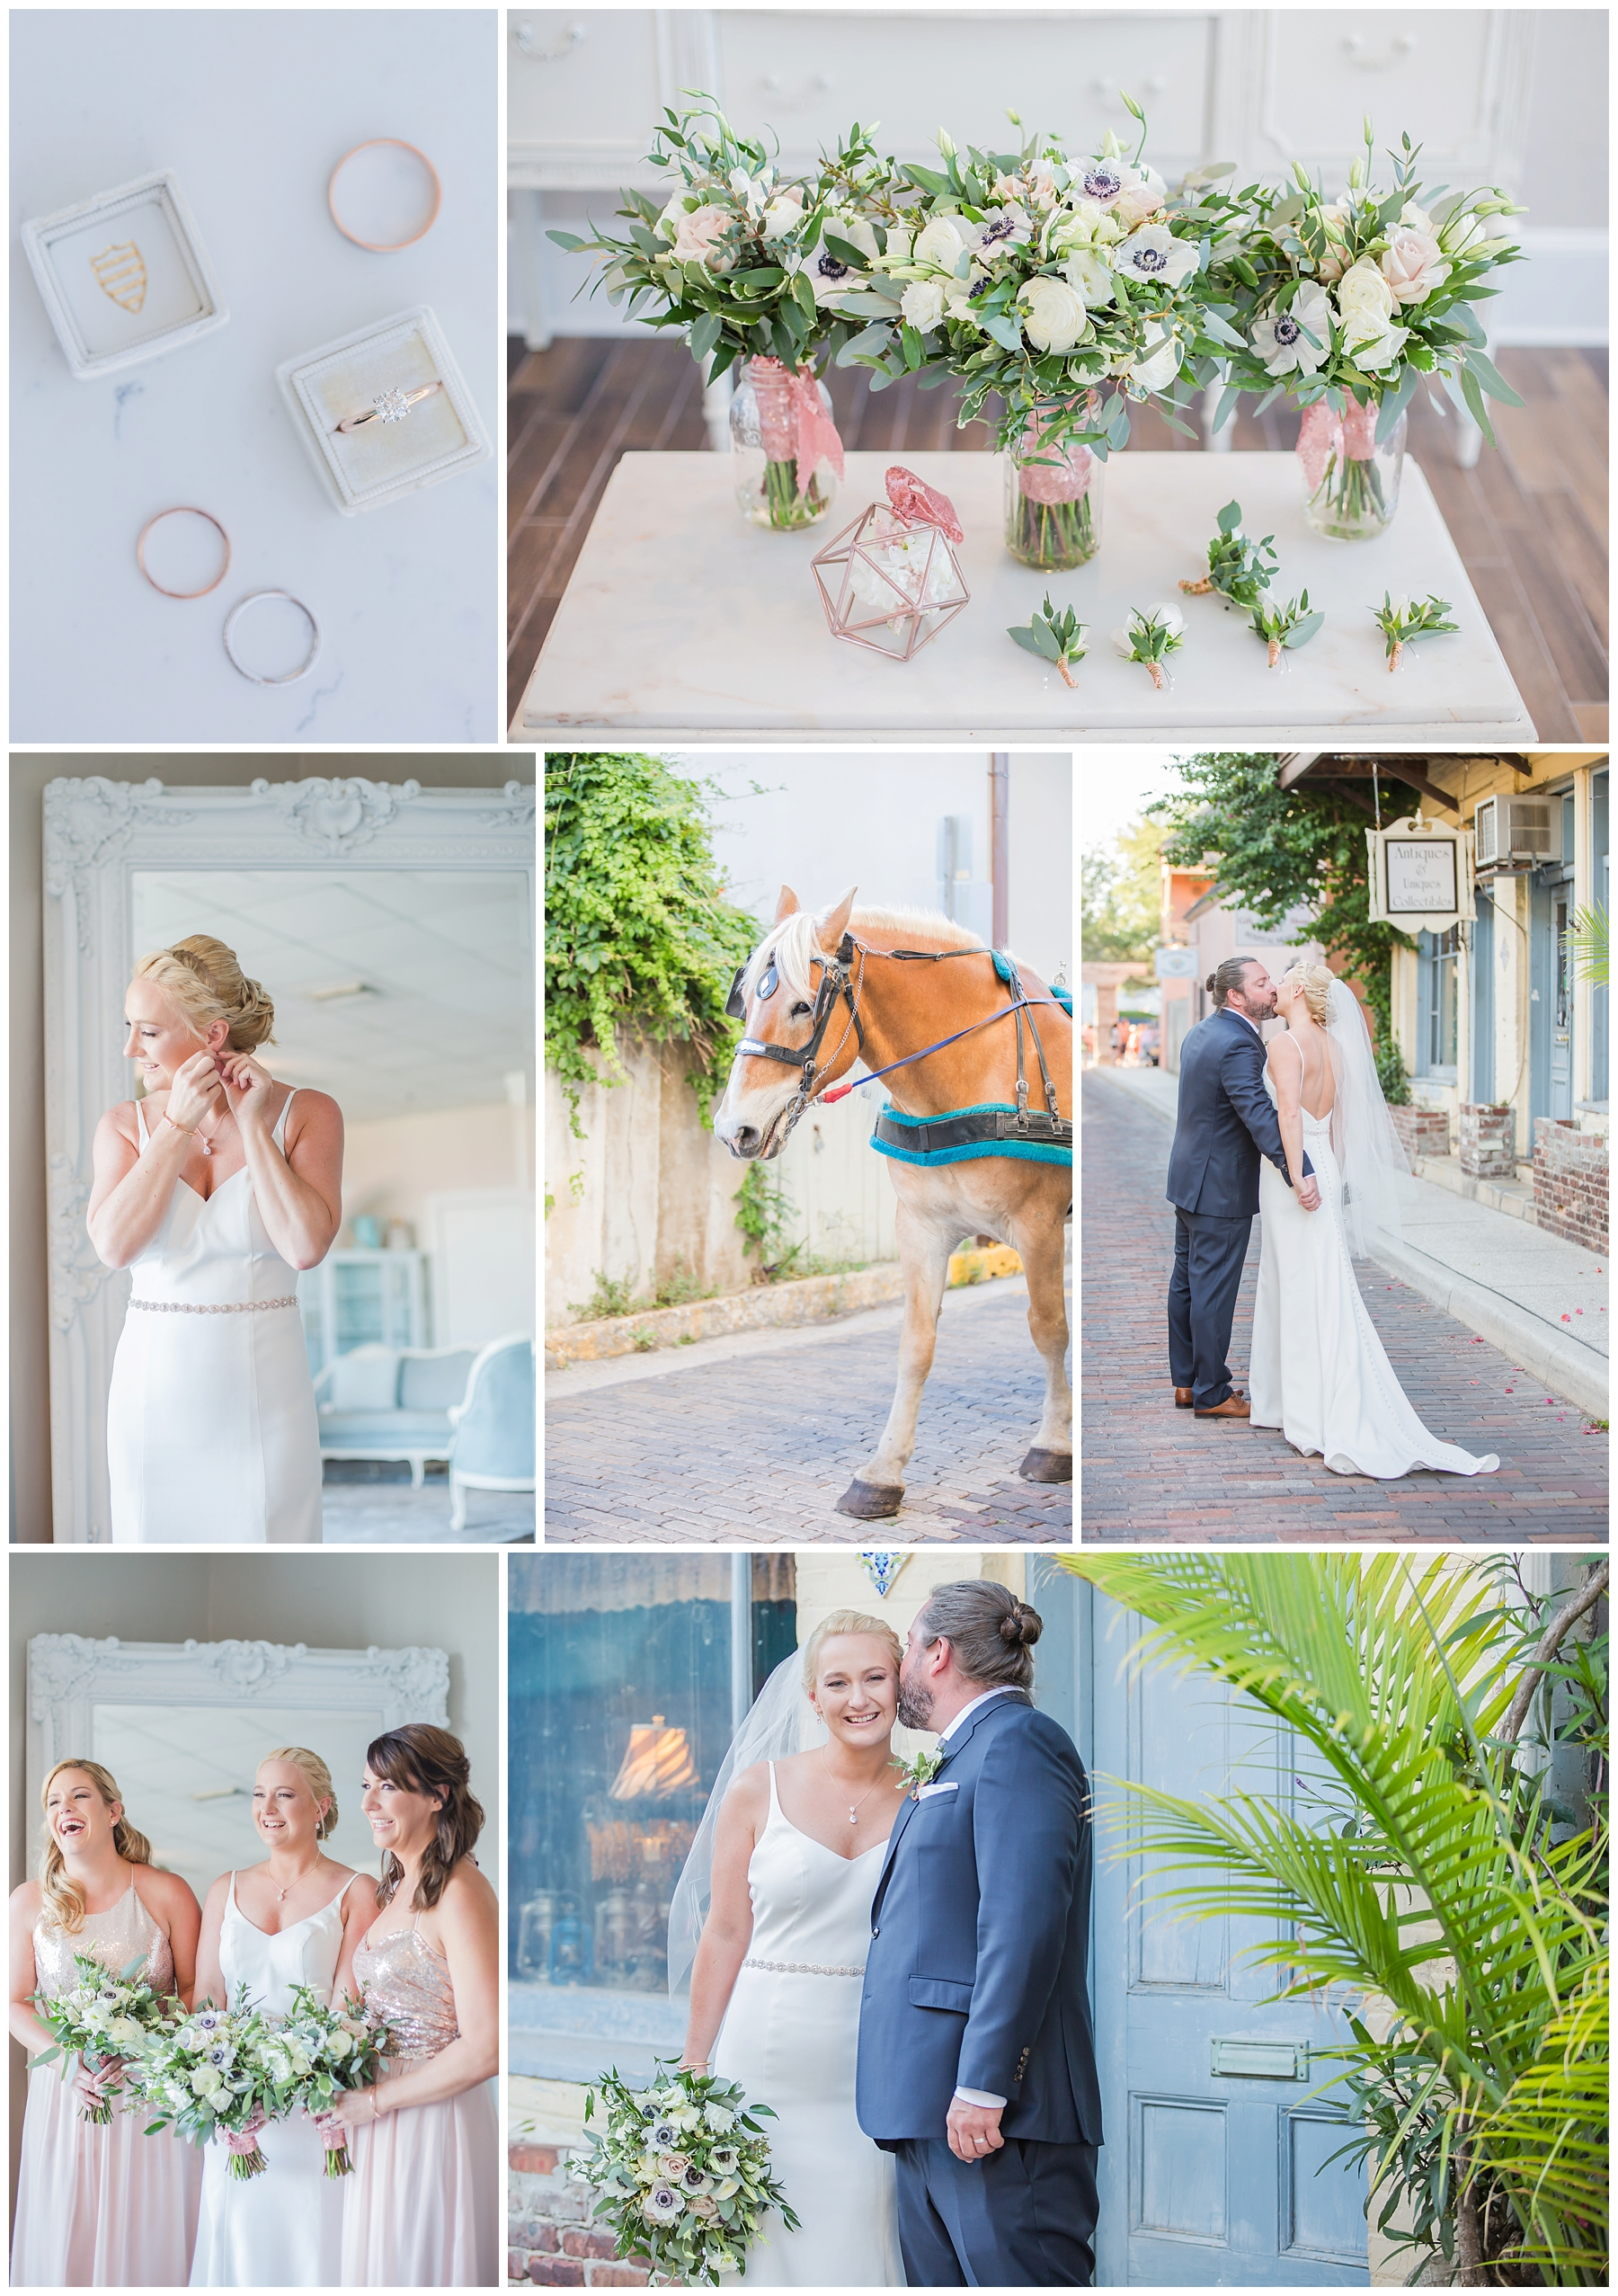 Jennifer + Steve's gorgeous wedding at The White Room! I had such a blast getting to work alongside Savannah for this wedding in Saint Augustine!